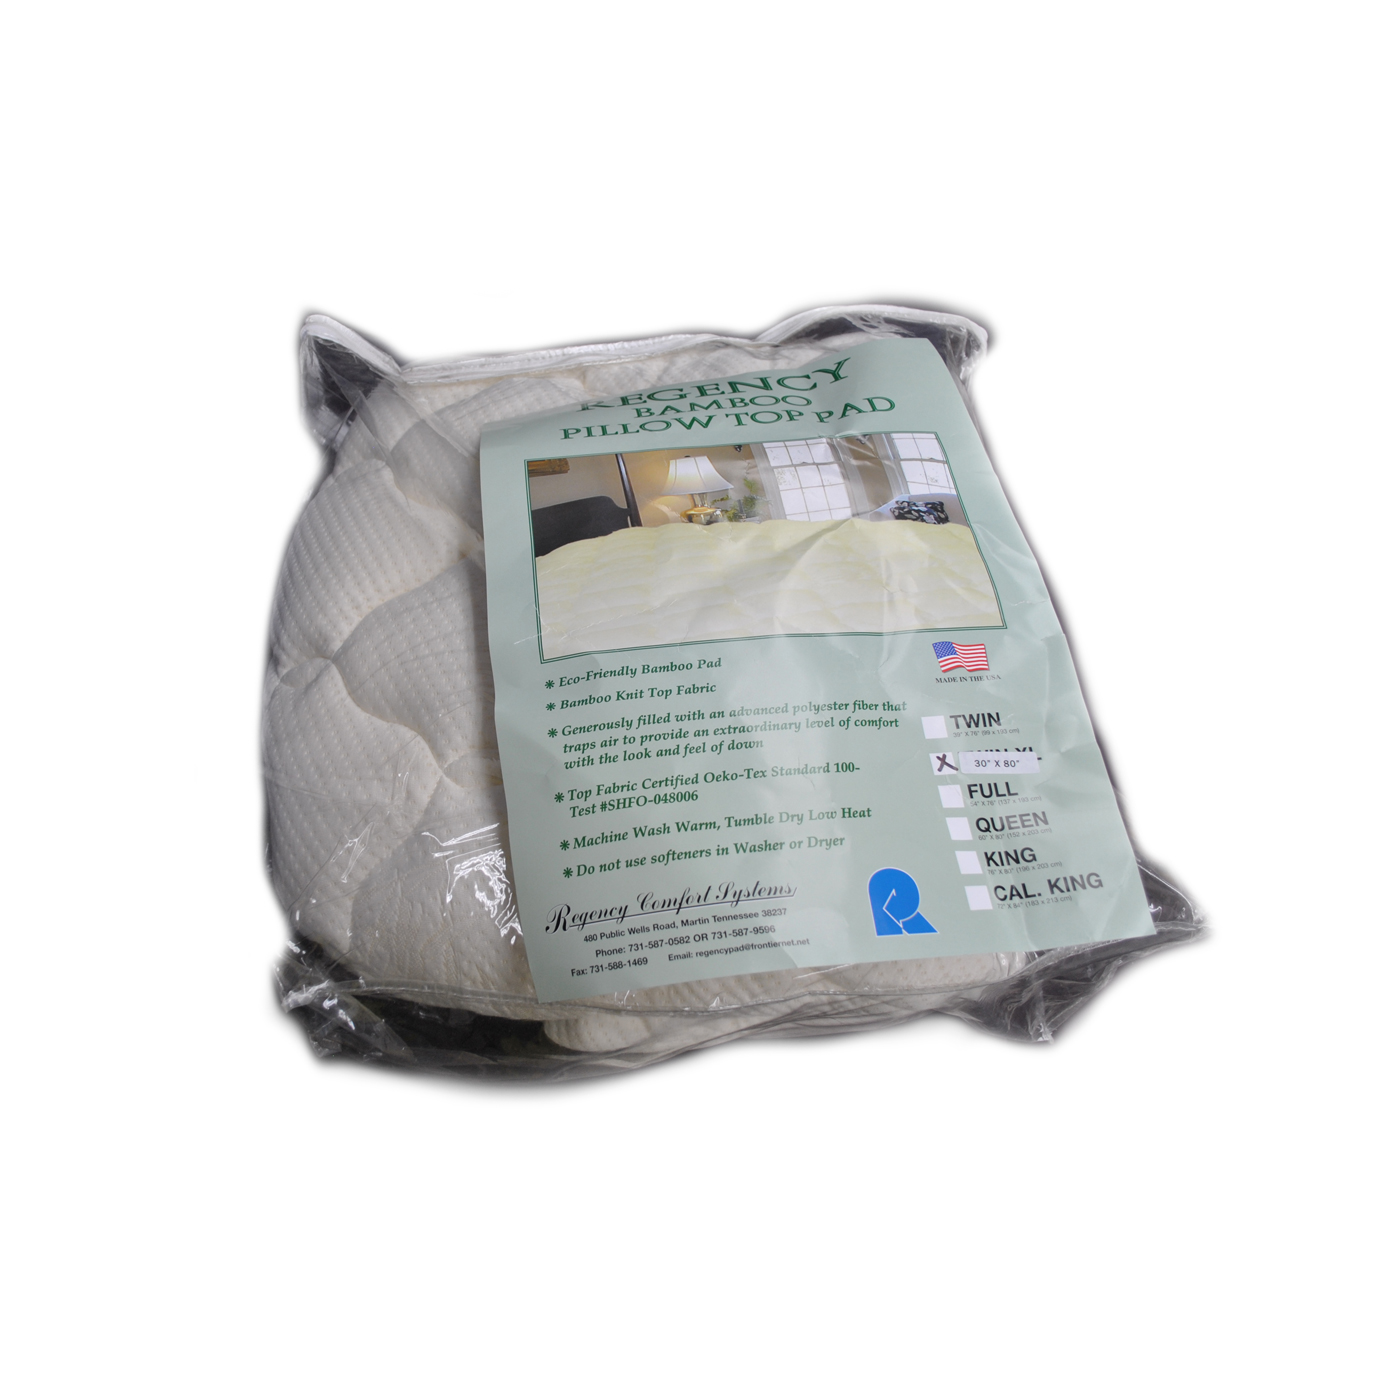 Hard Mattress Topper Cost Discount Inexpensive Cheap Certified Organic